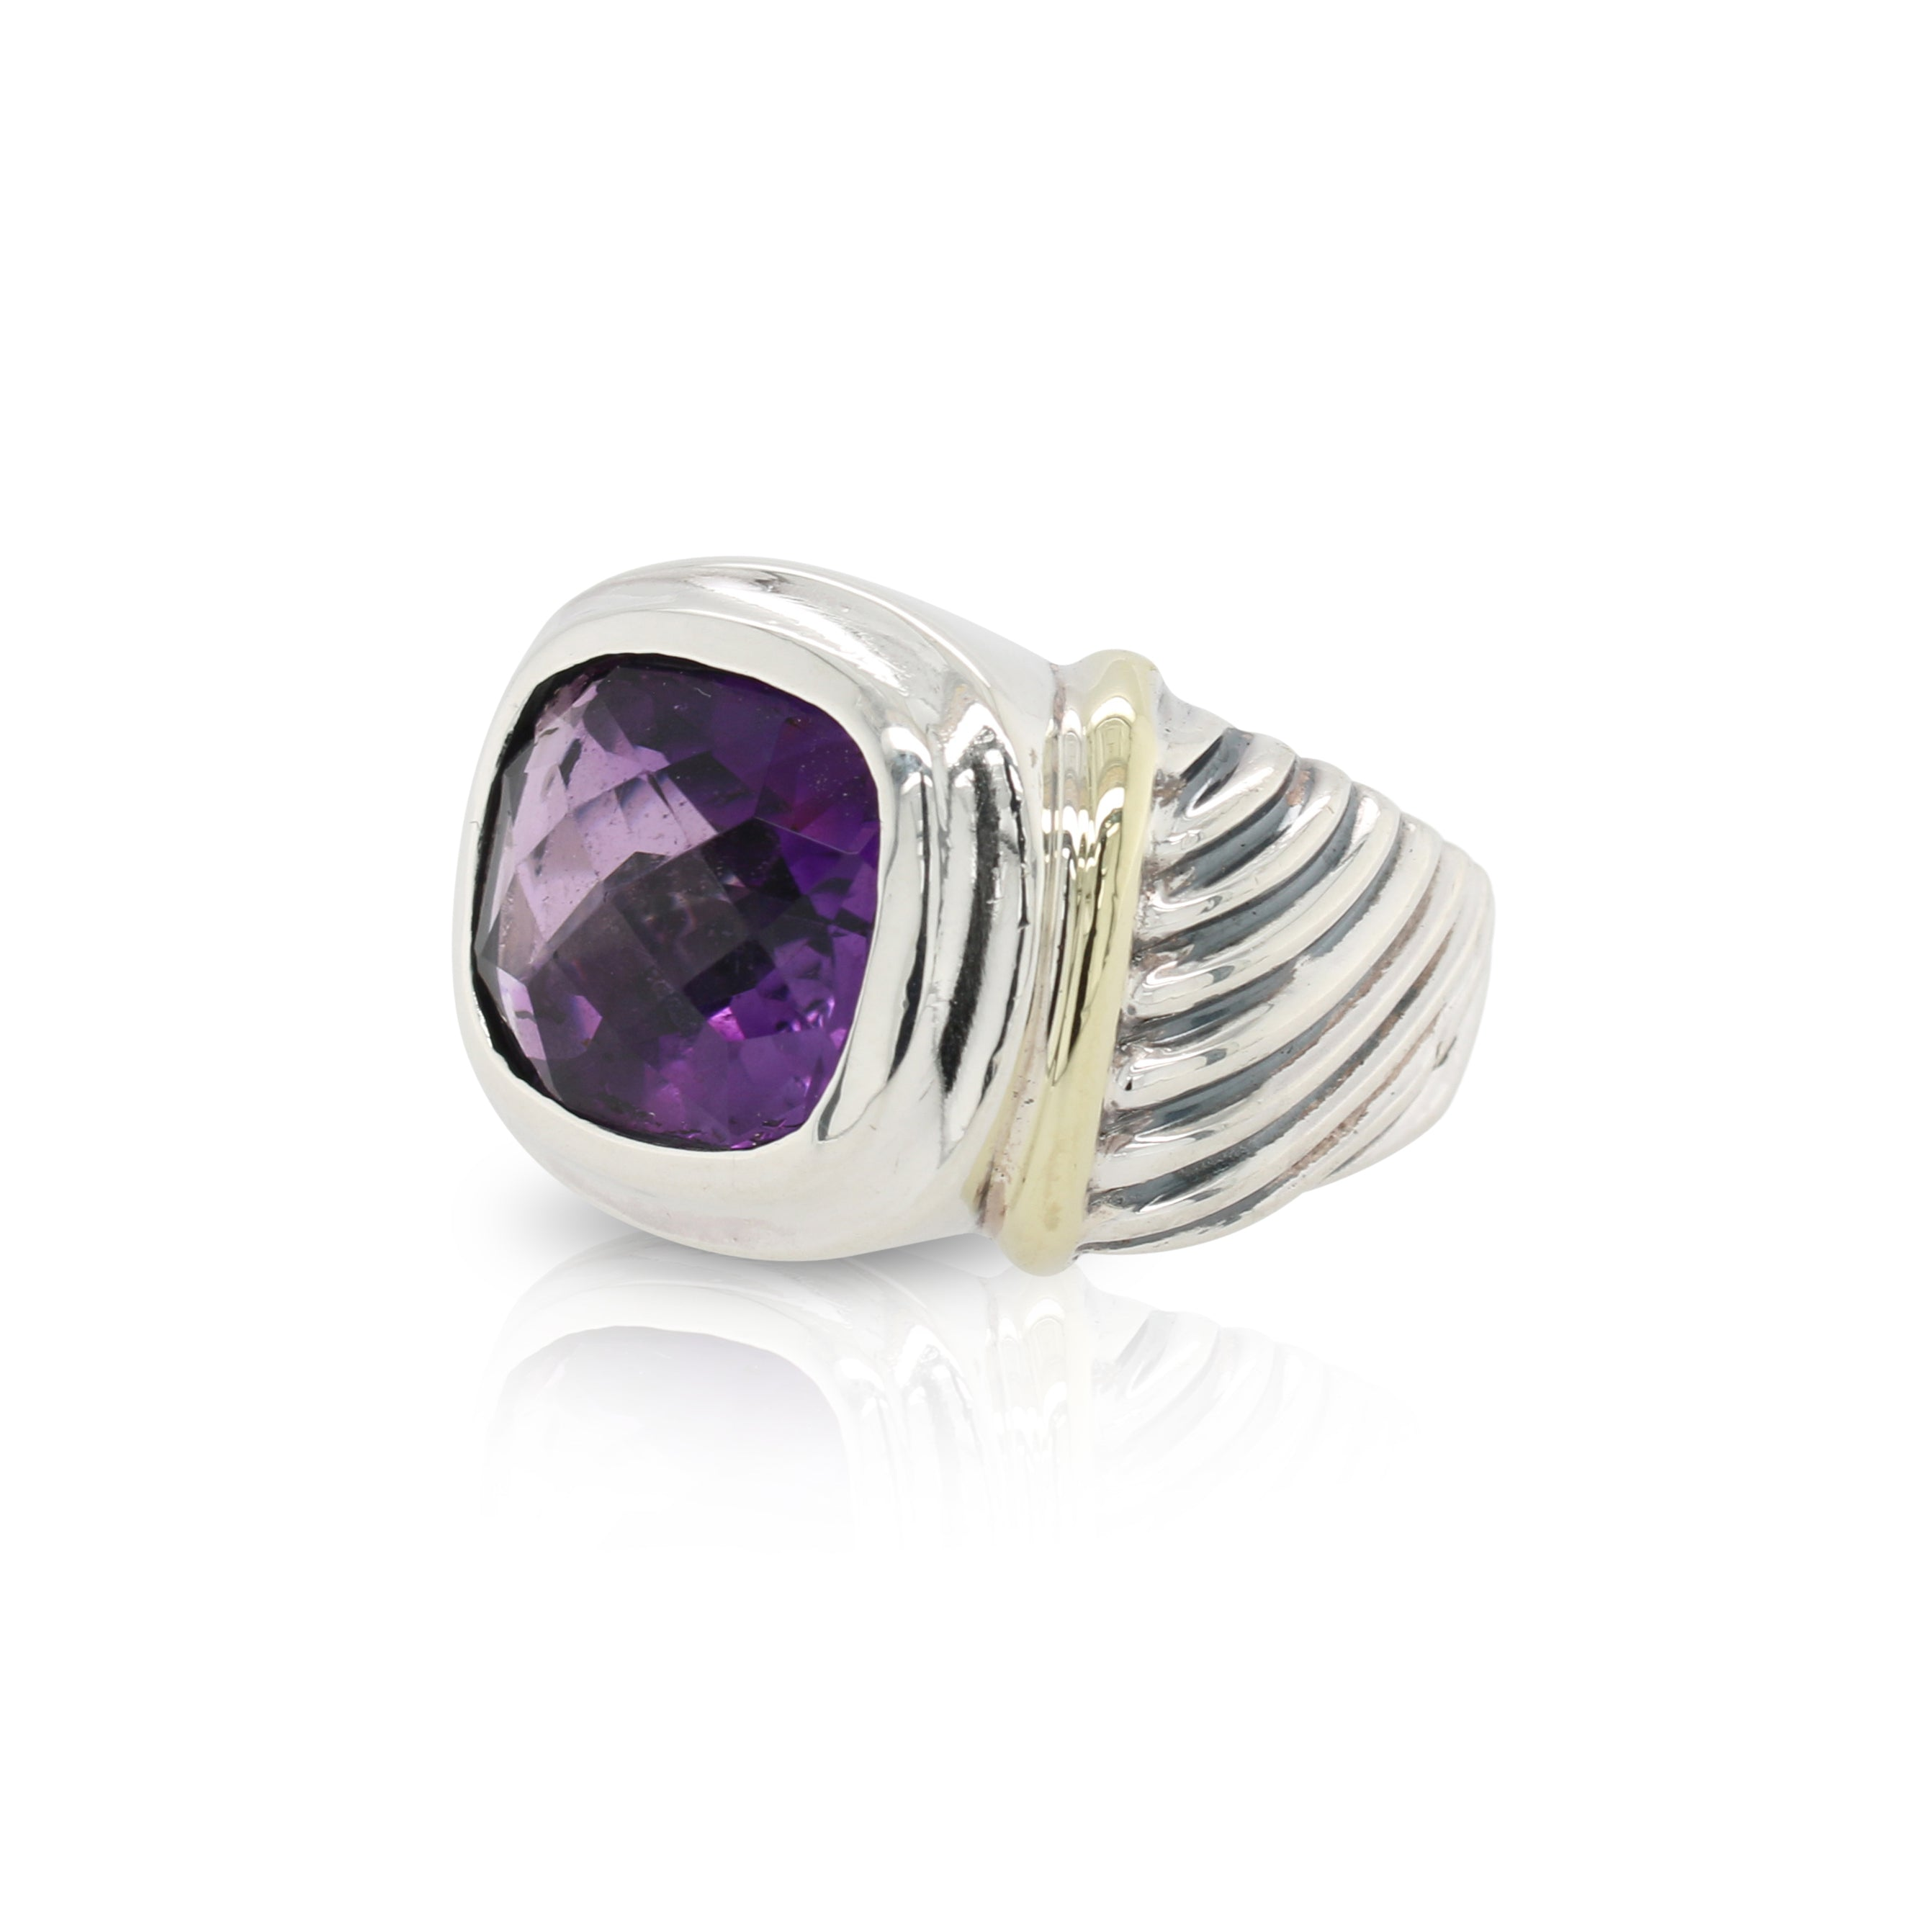 David Yurman Amethyst Ring